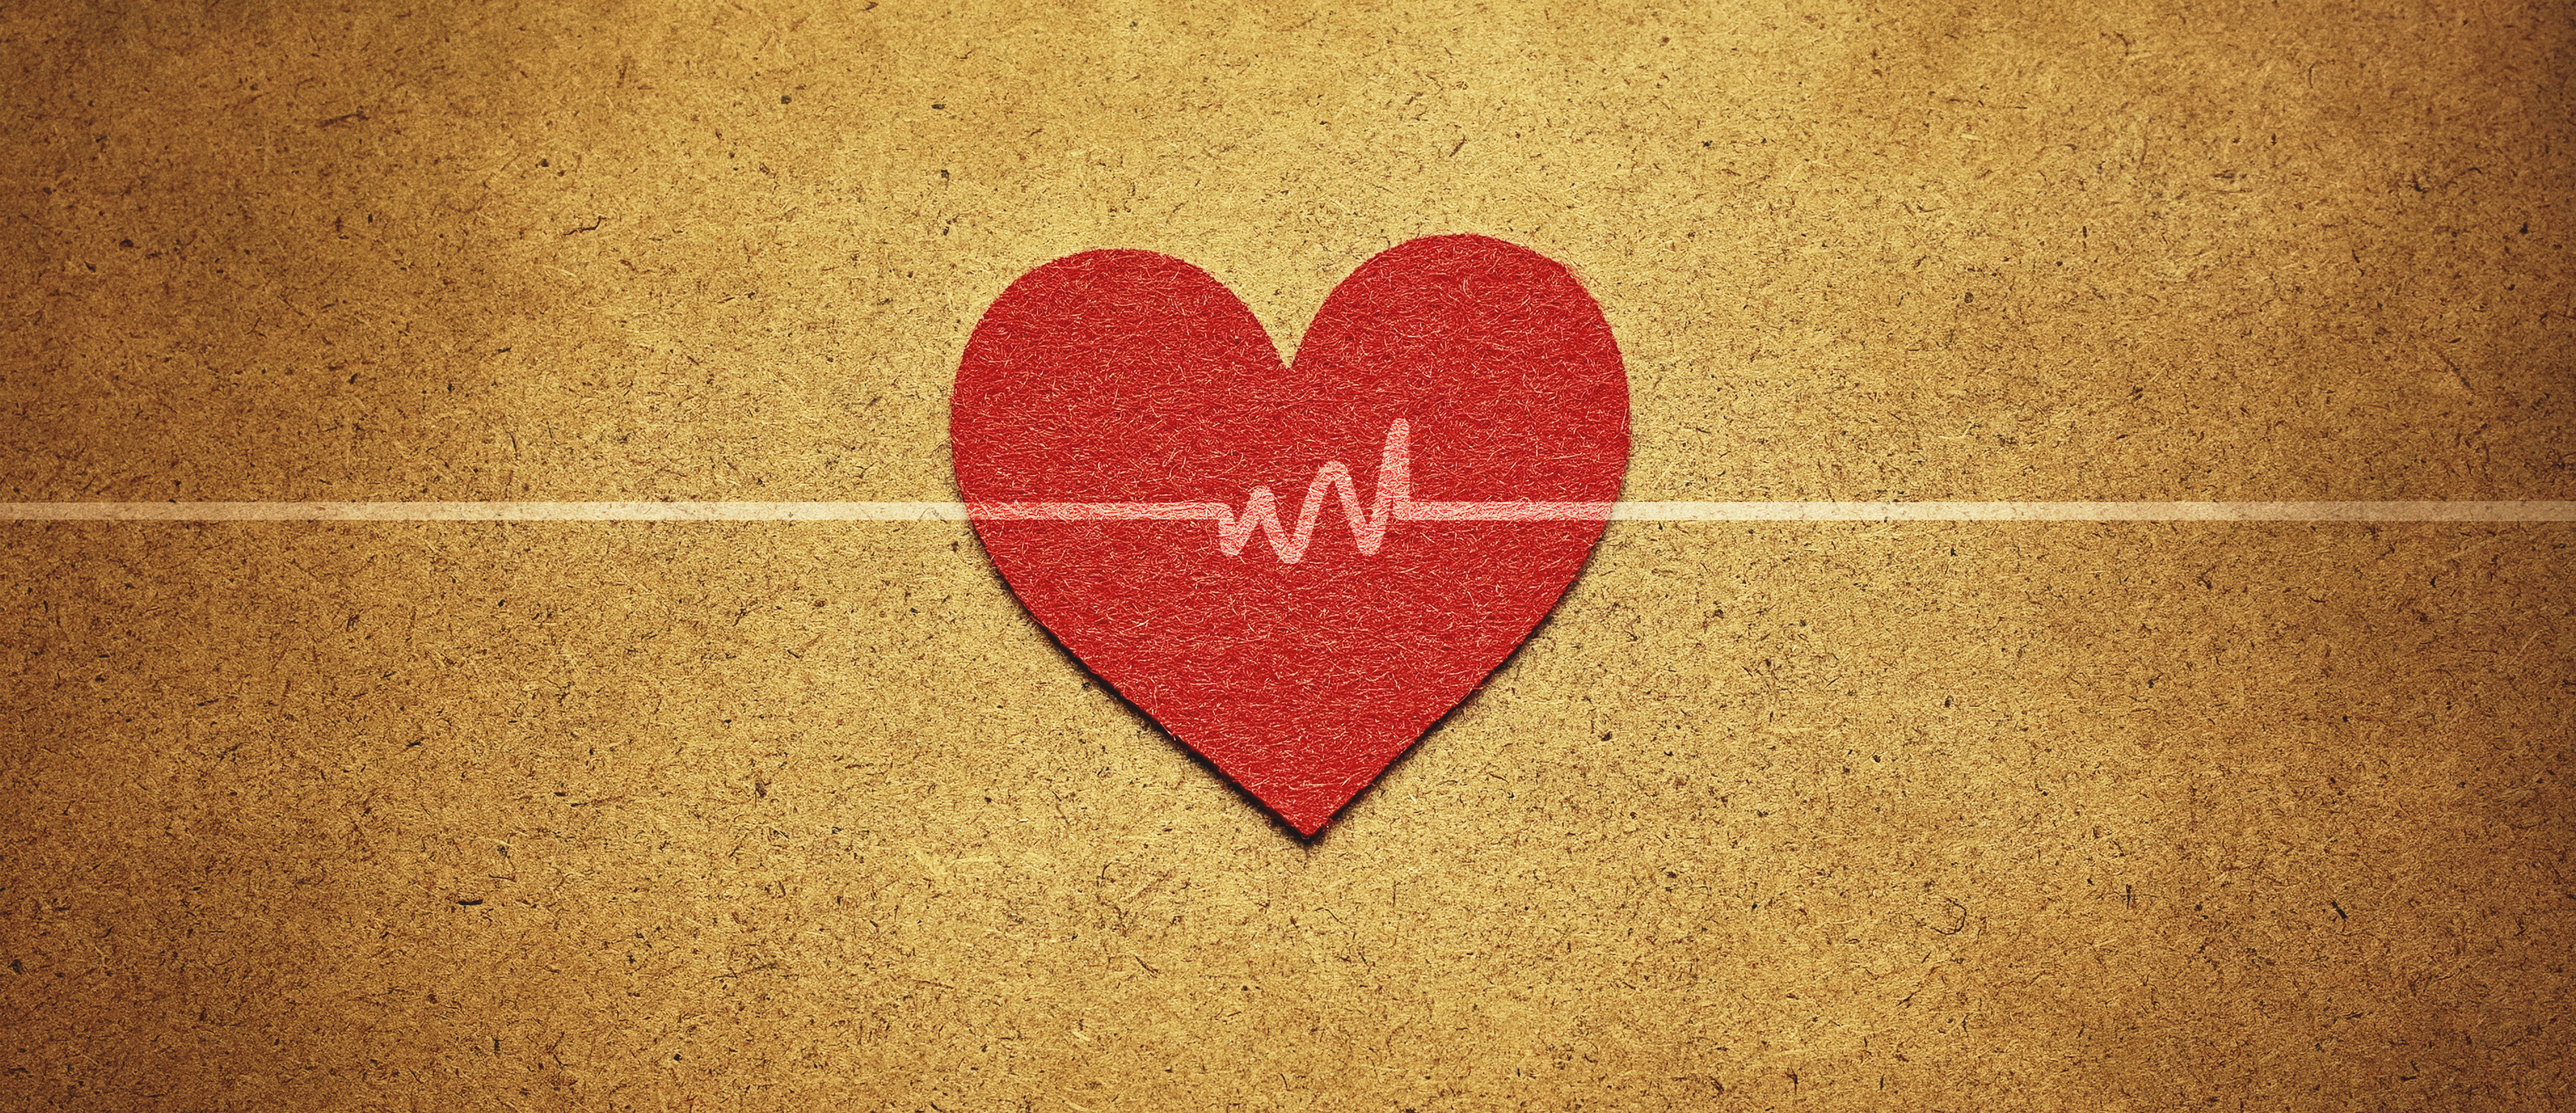 Younger Women Less Likely to Receive Preventive Care for Heart Disease